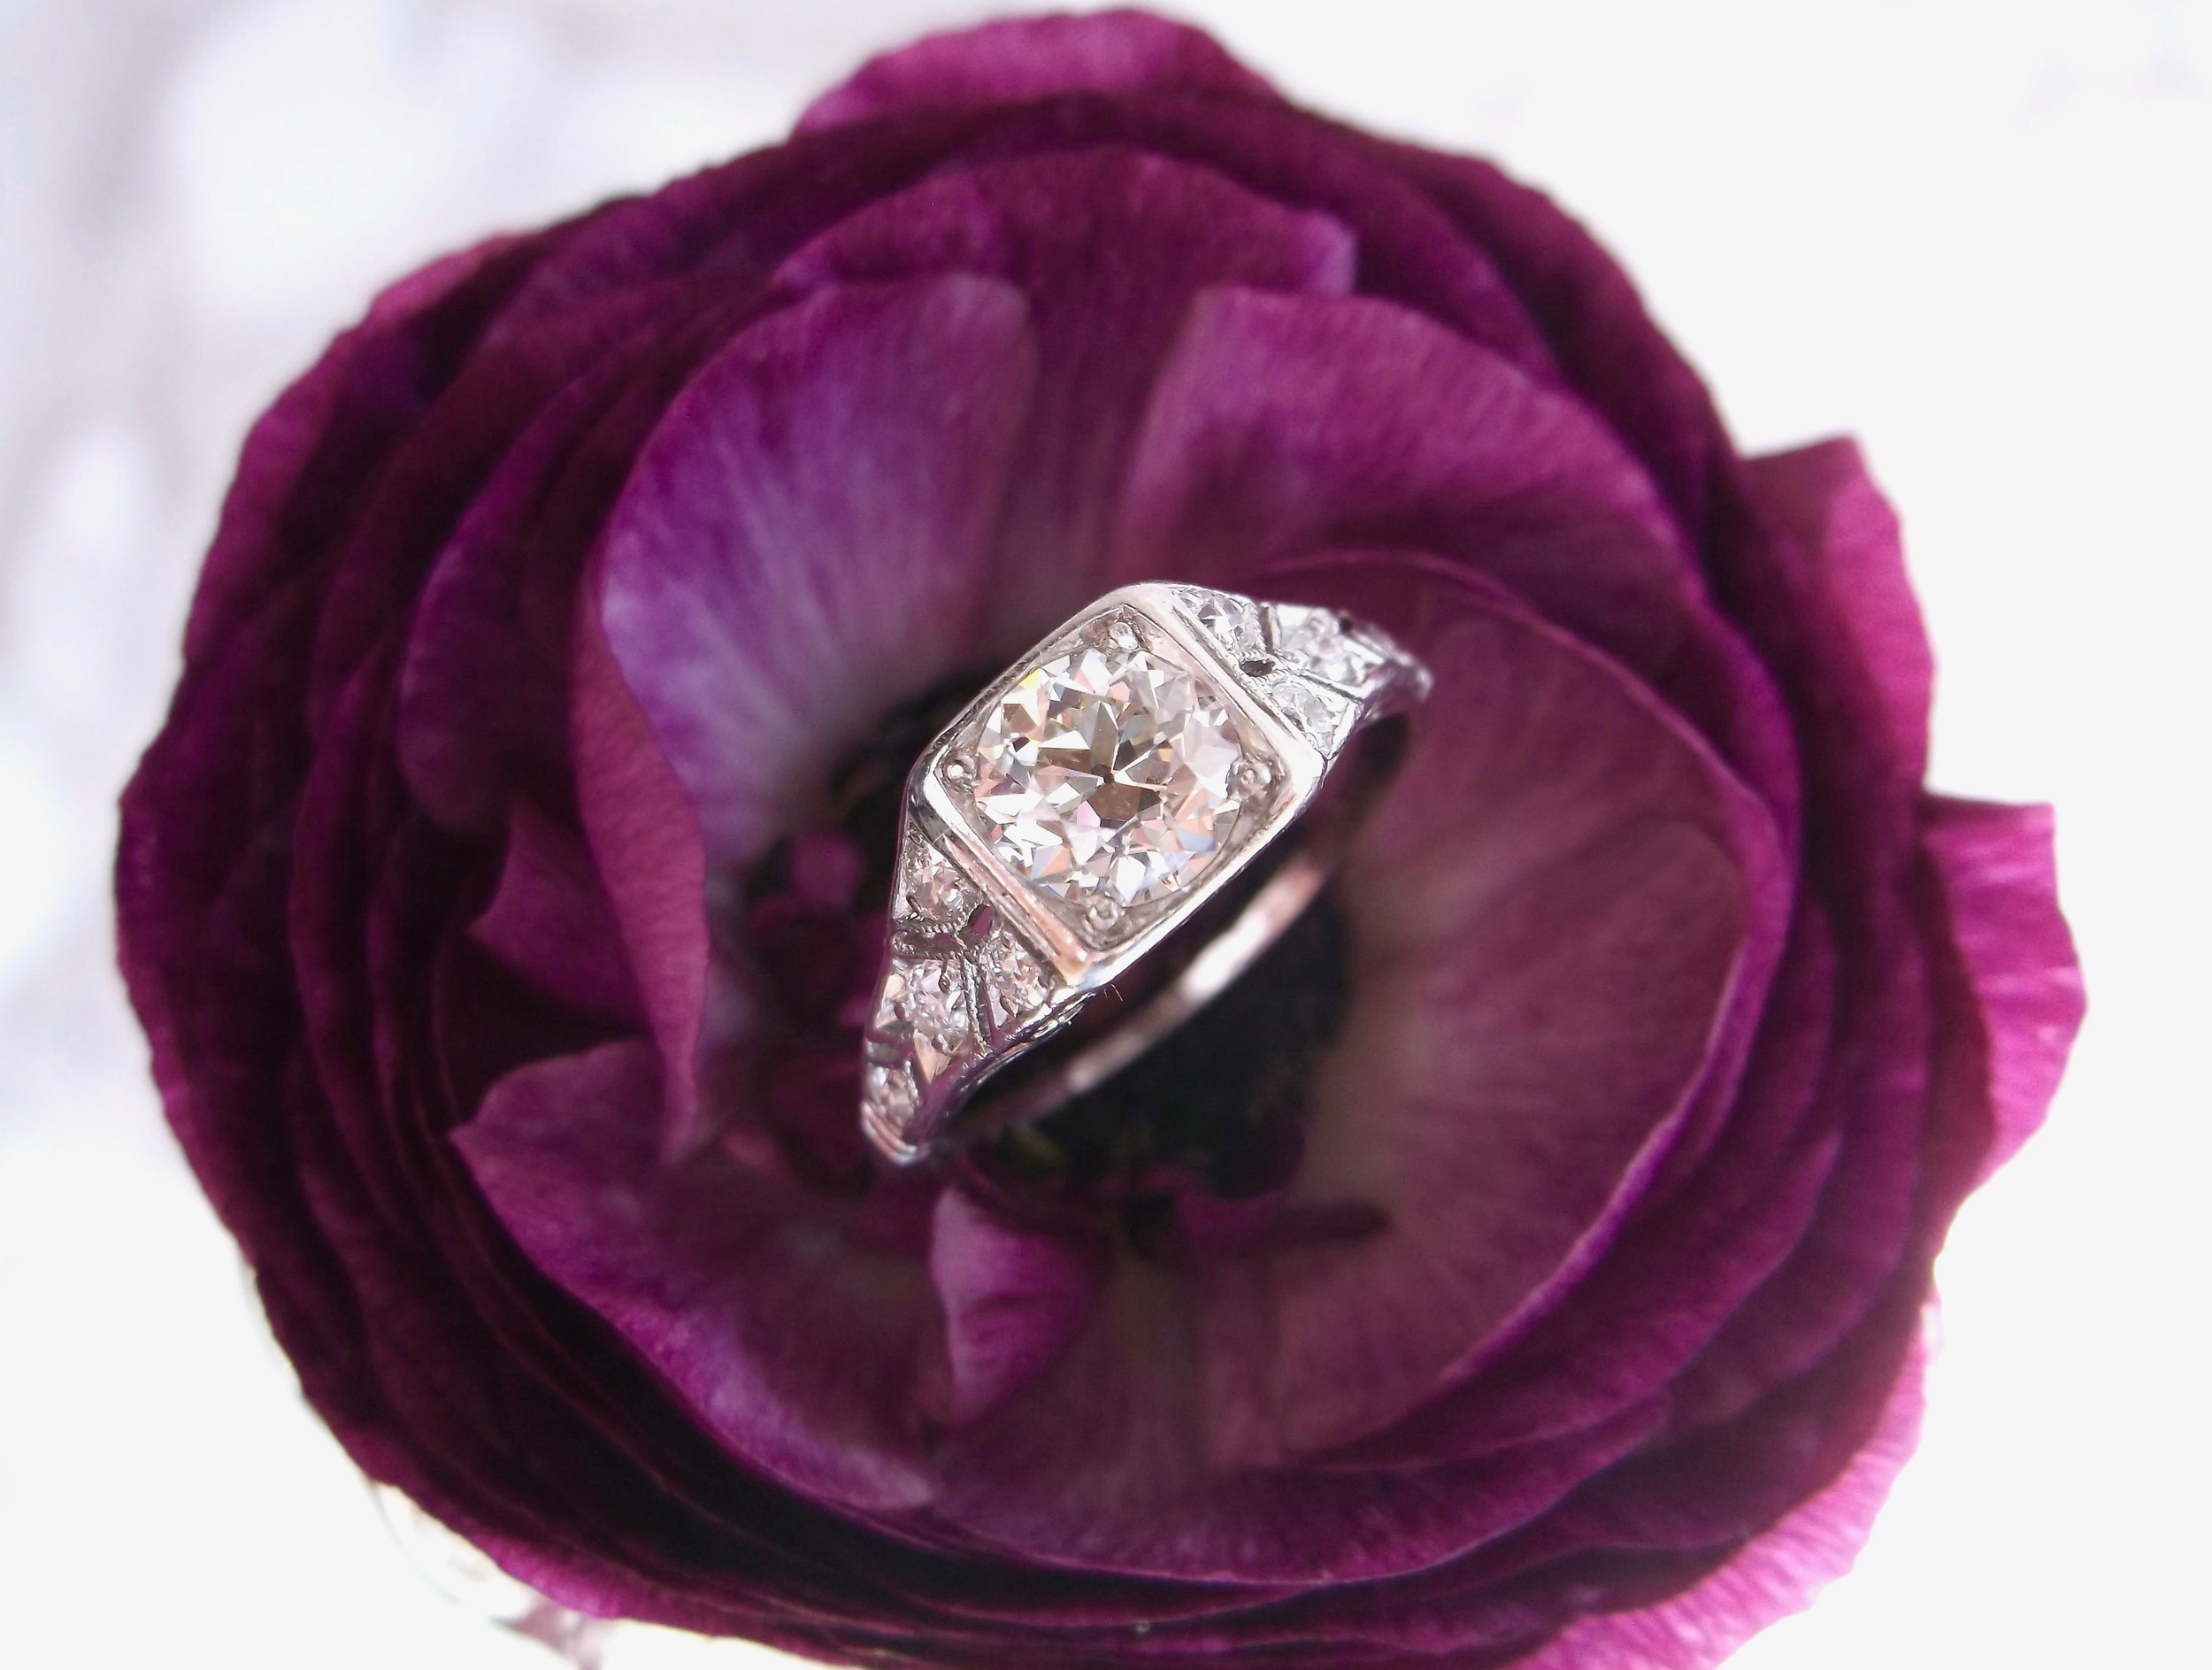 1920's classic beauty featuring a center 0.70 carat Old European cut diamond with diamond accents all set in platinum. Shop this gorgeous ring  HERE .